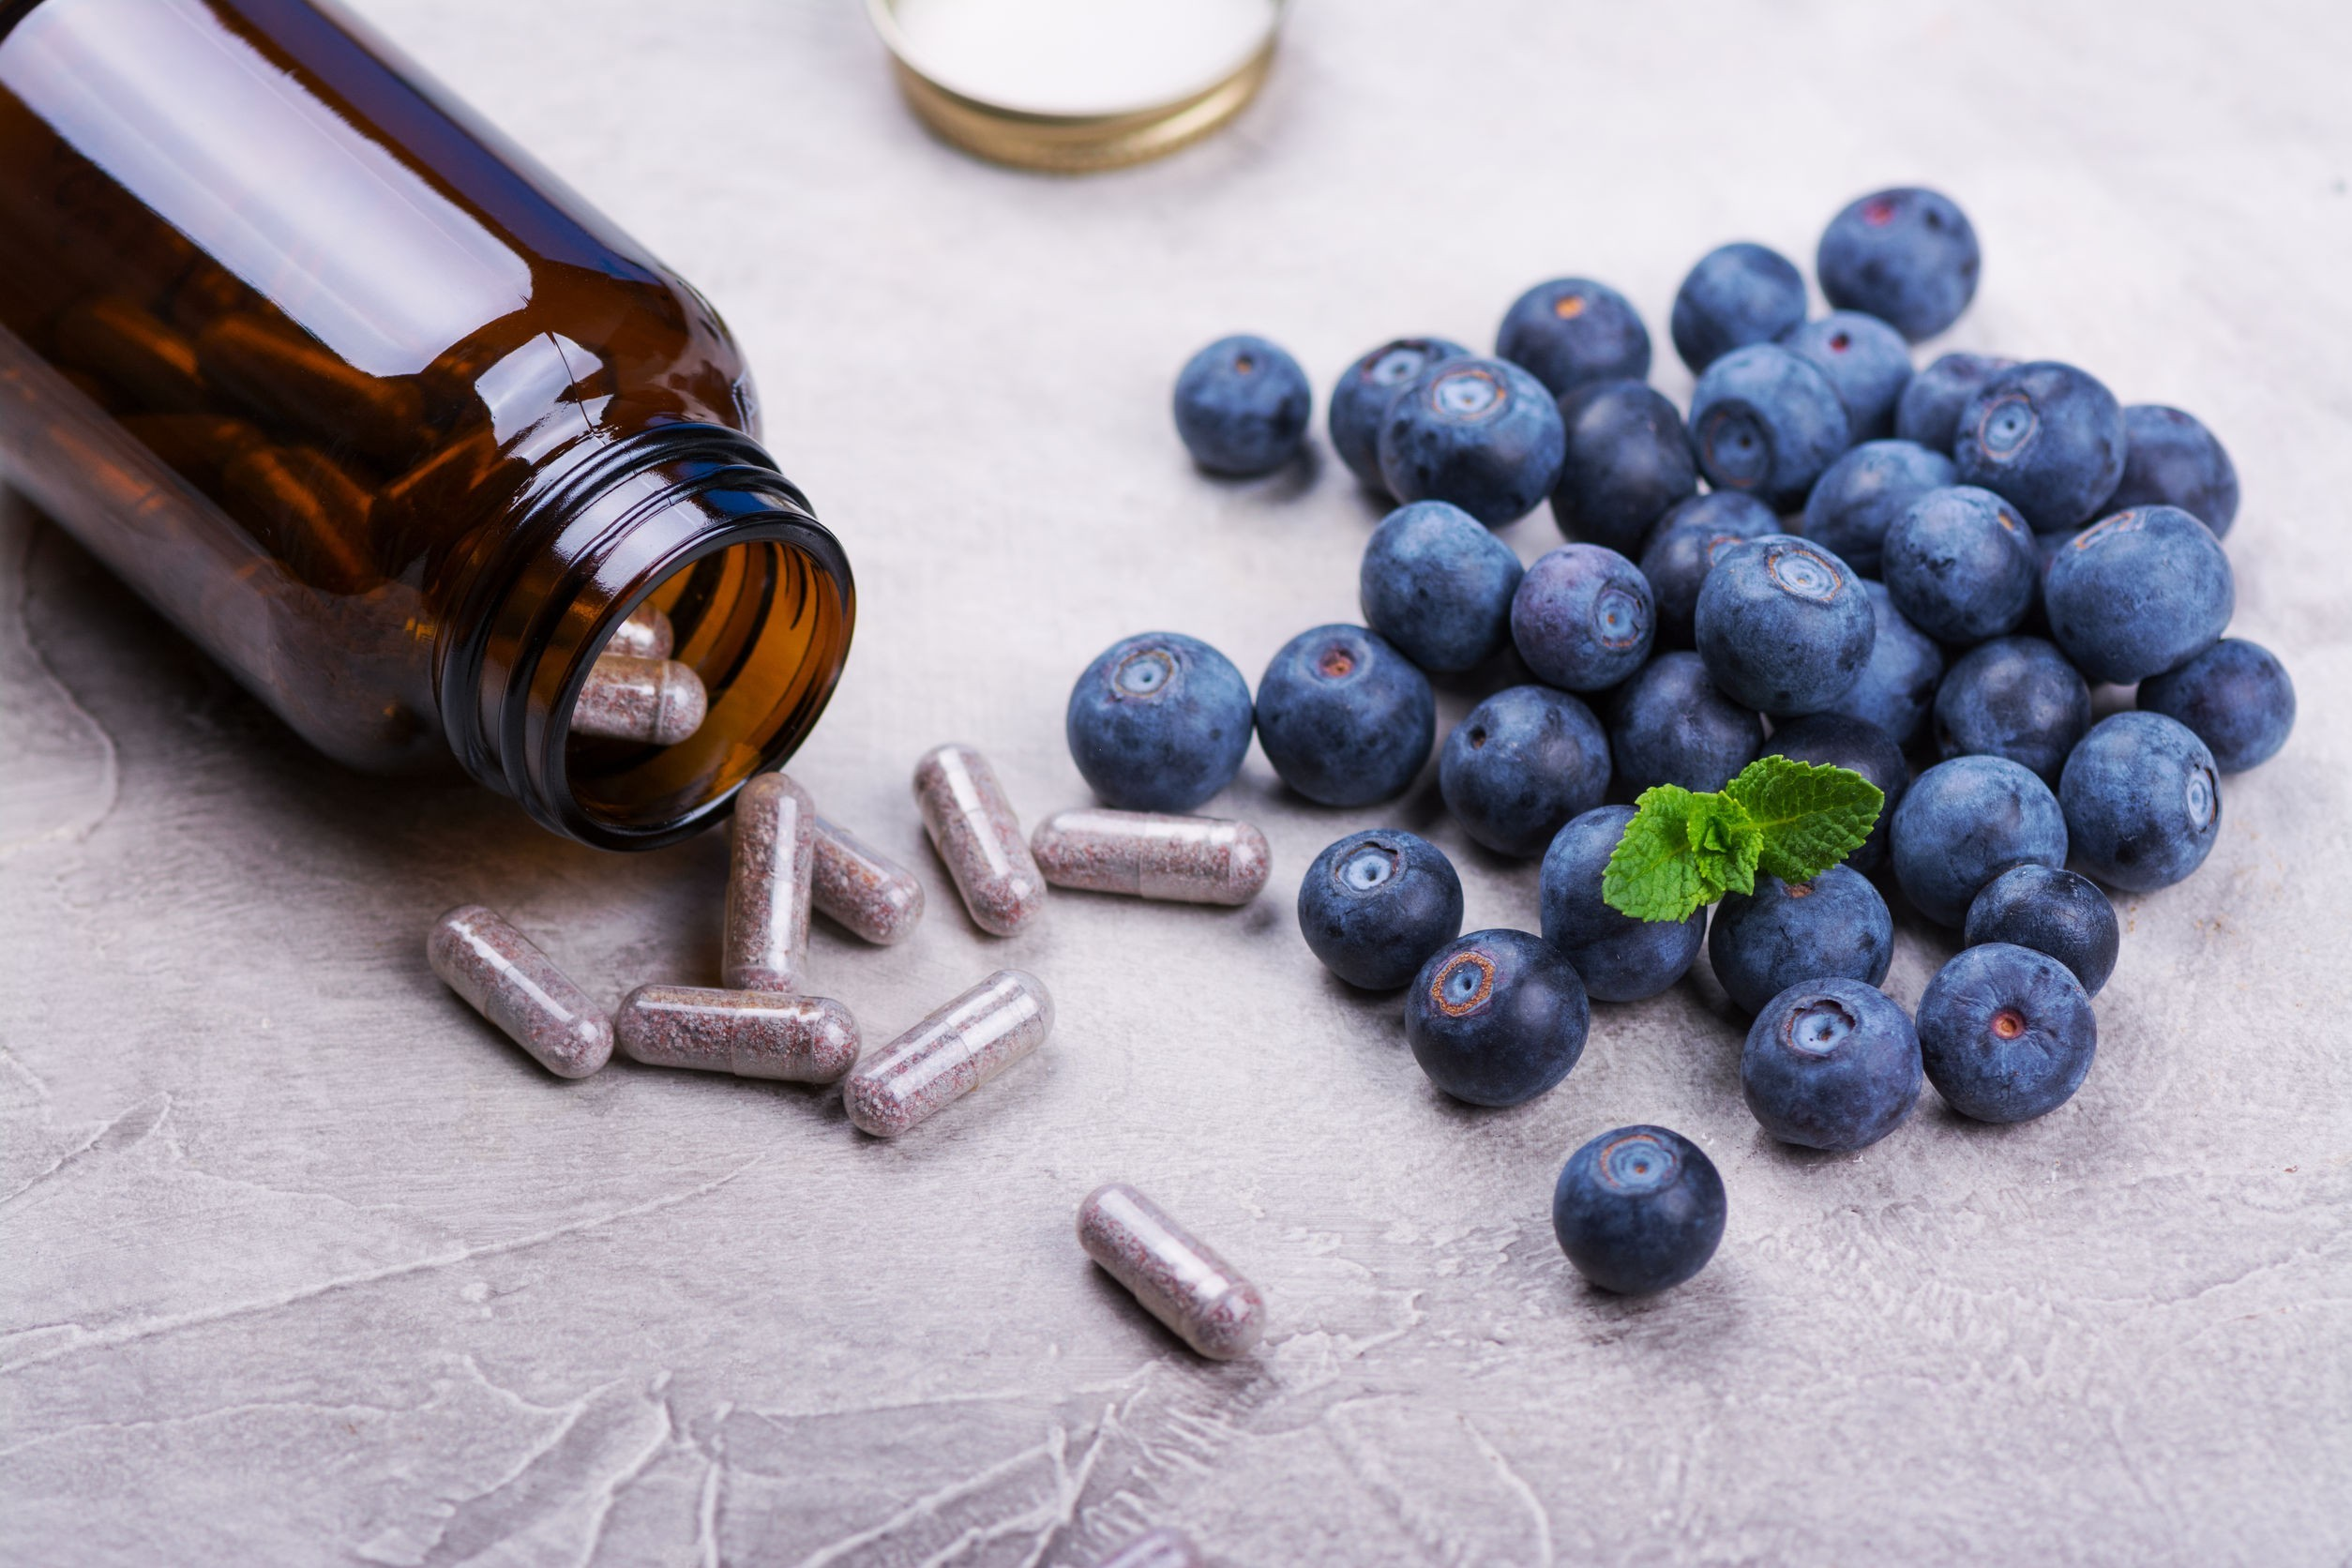 Better blueberries or supplements?